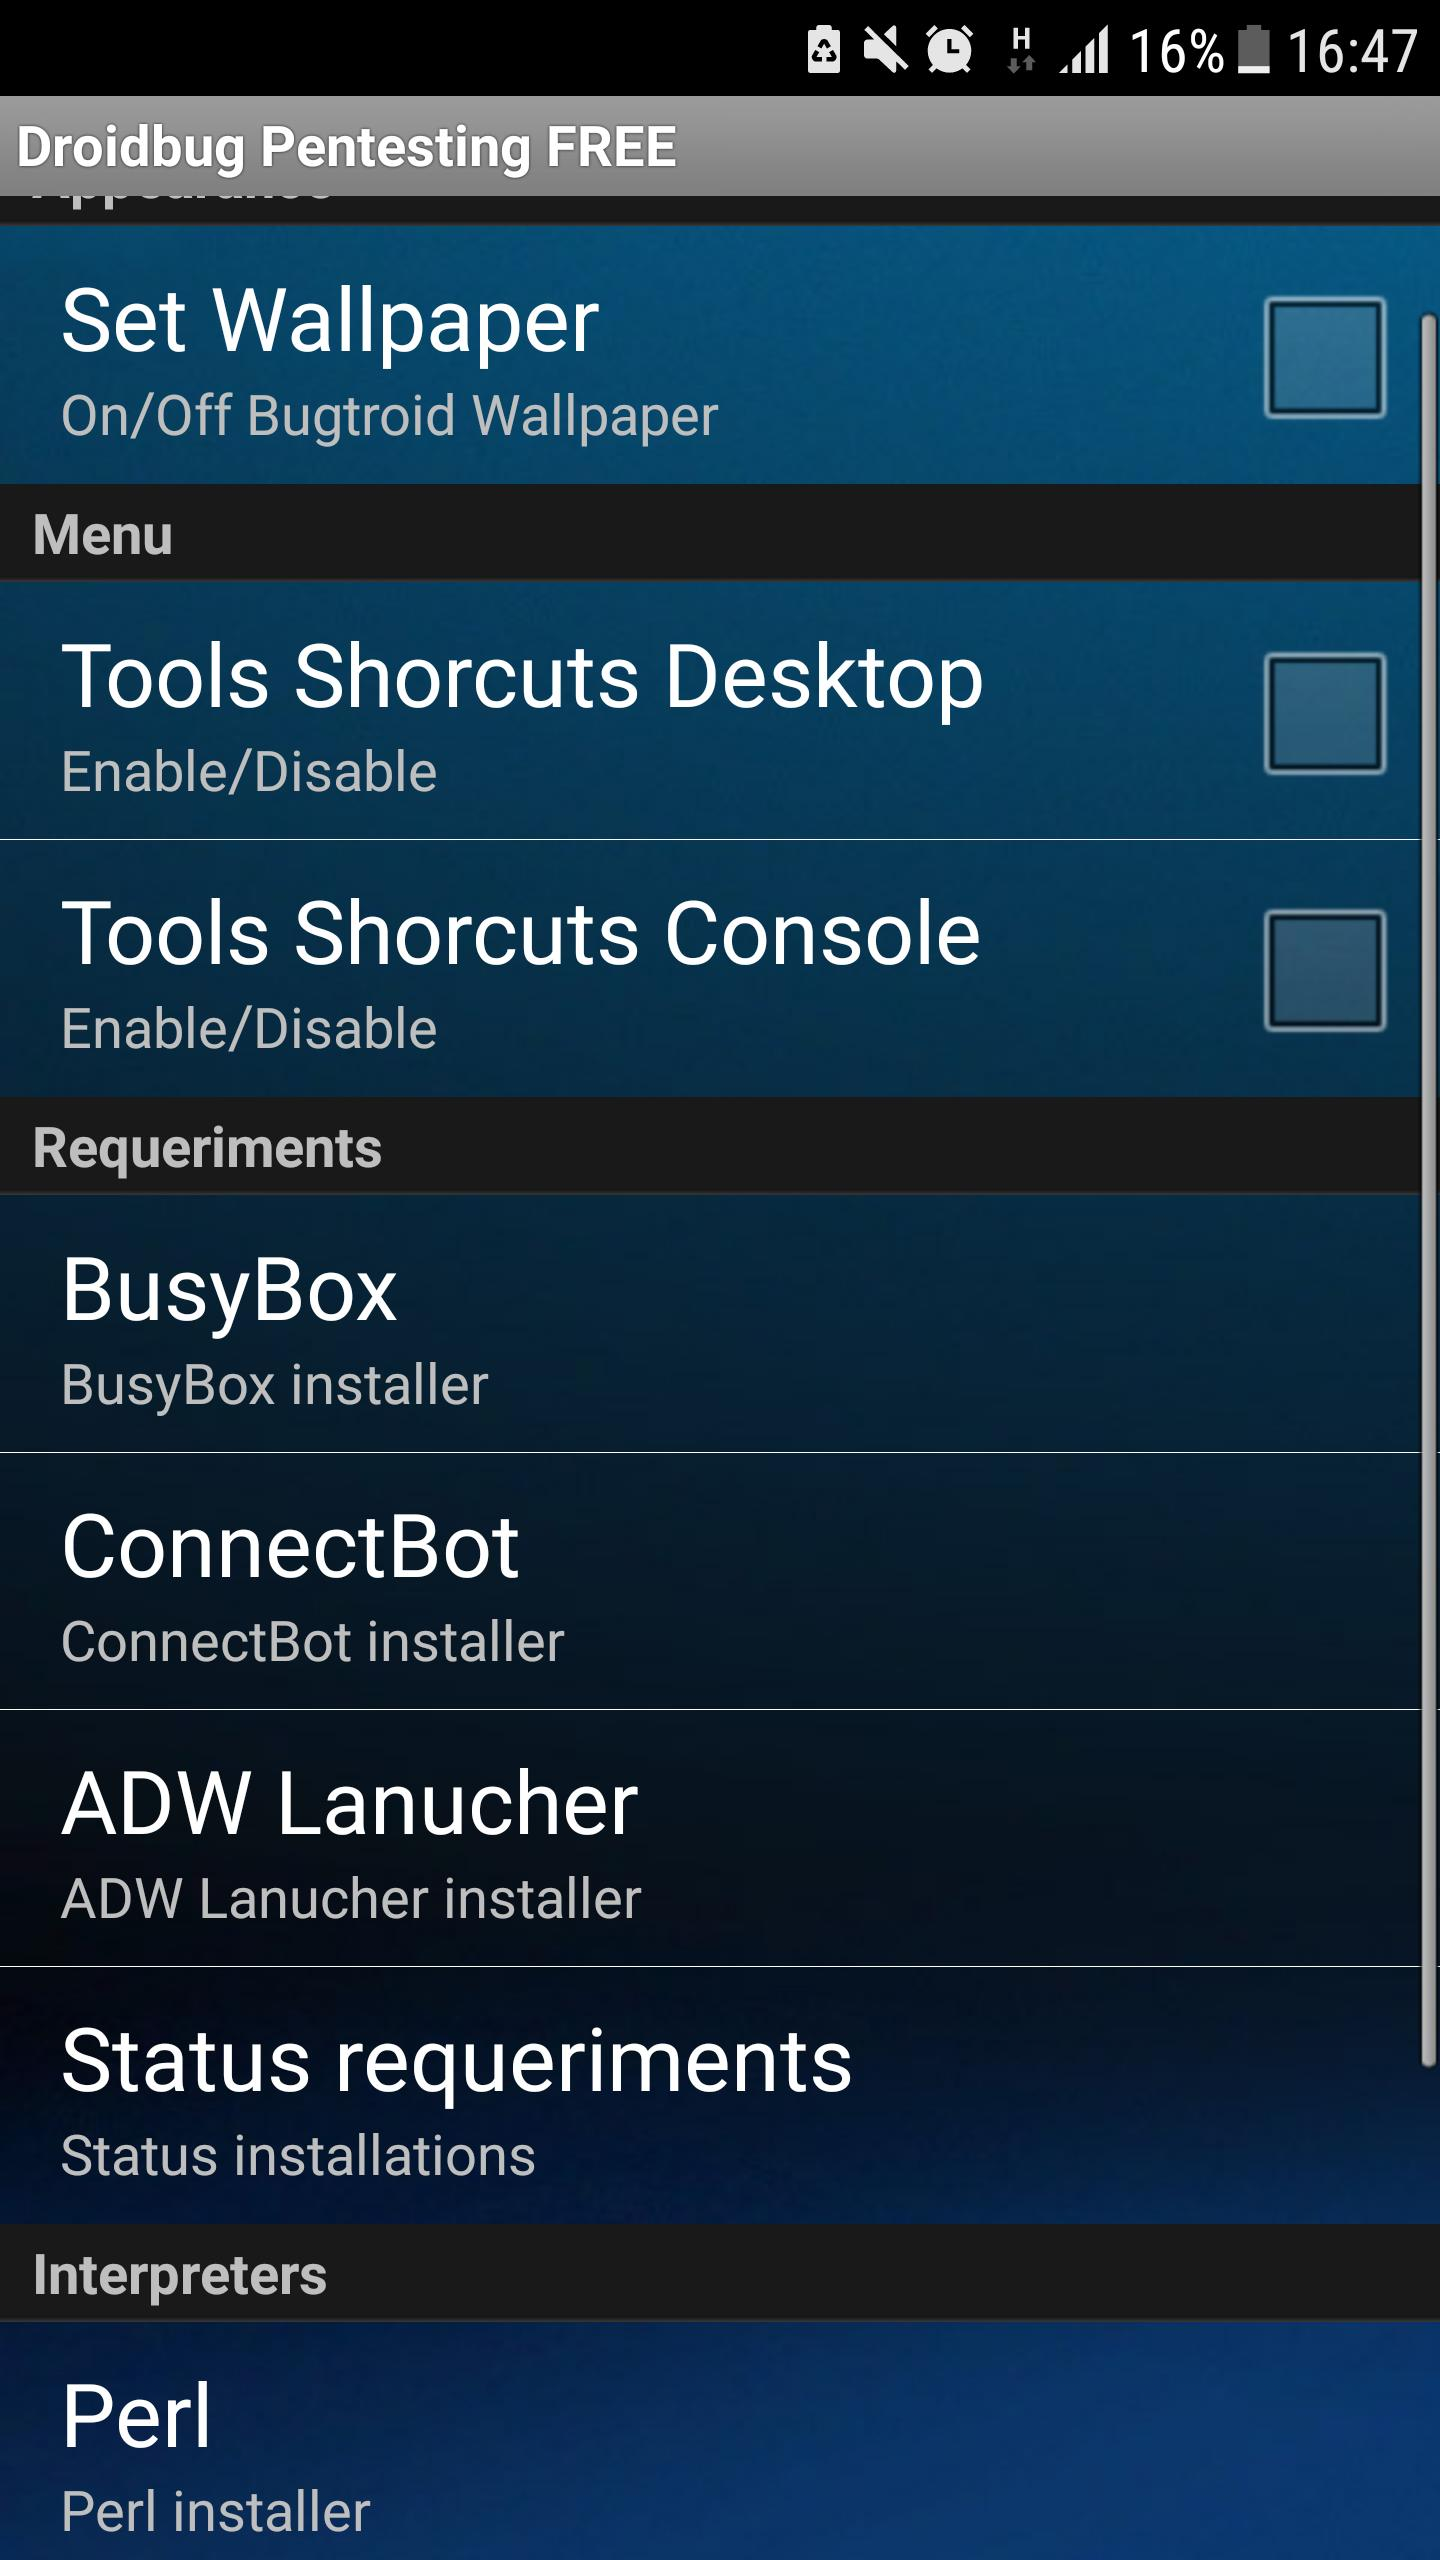 Droidbug Pentesting & Forensic FREE for Android - APK Download